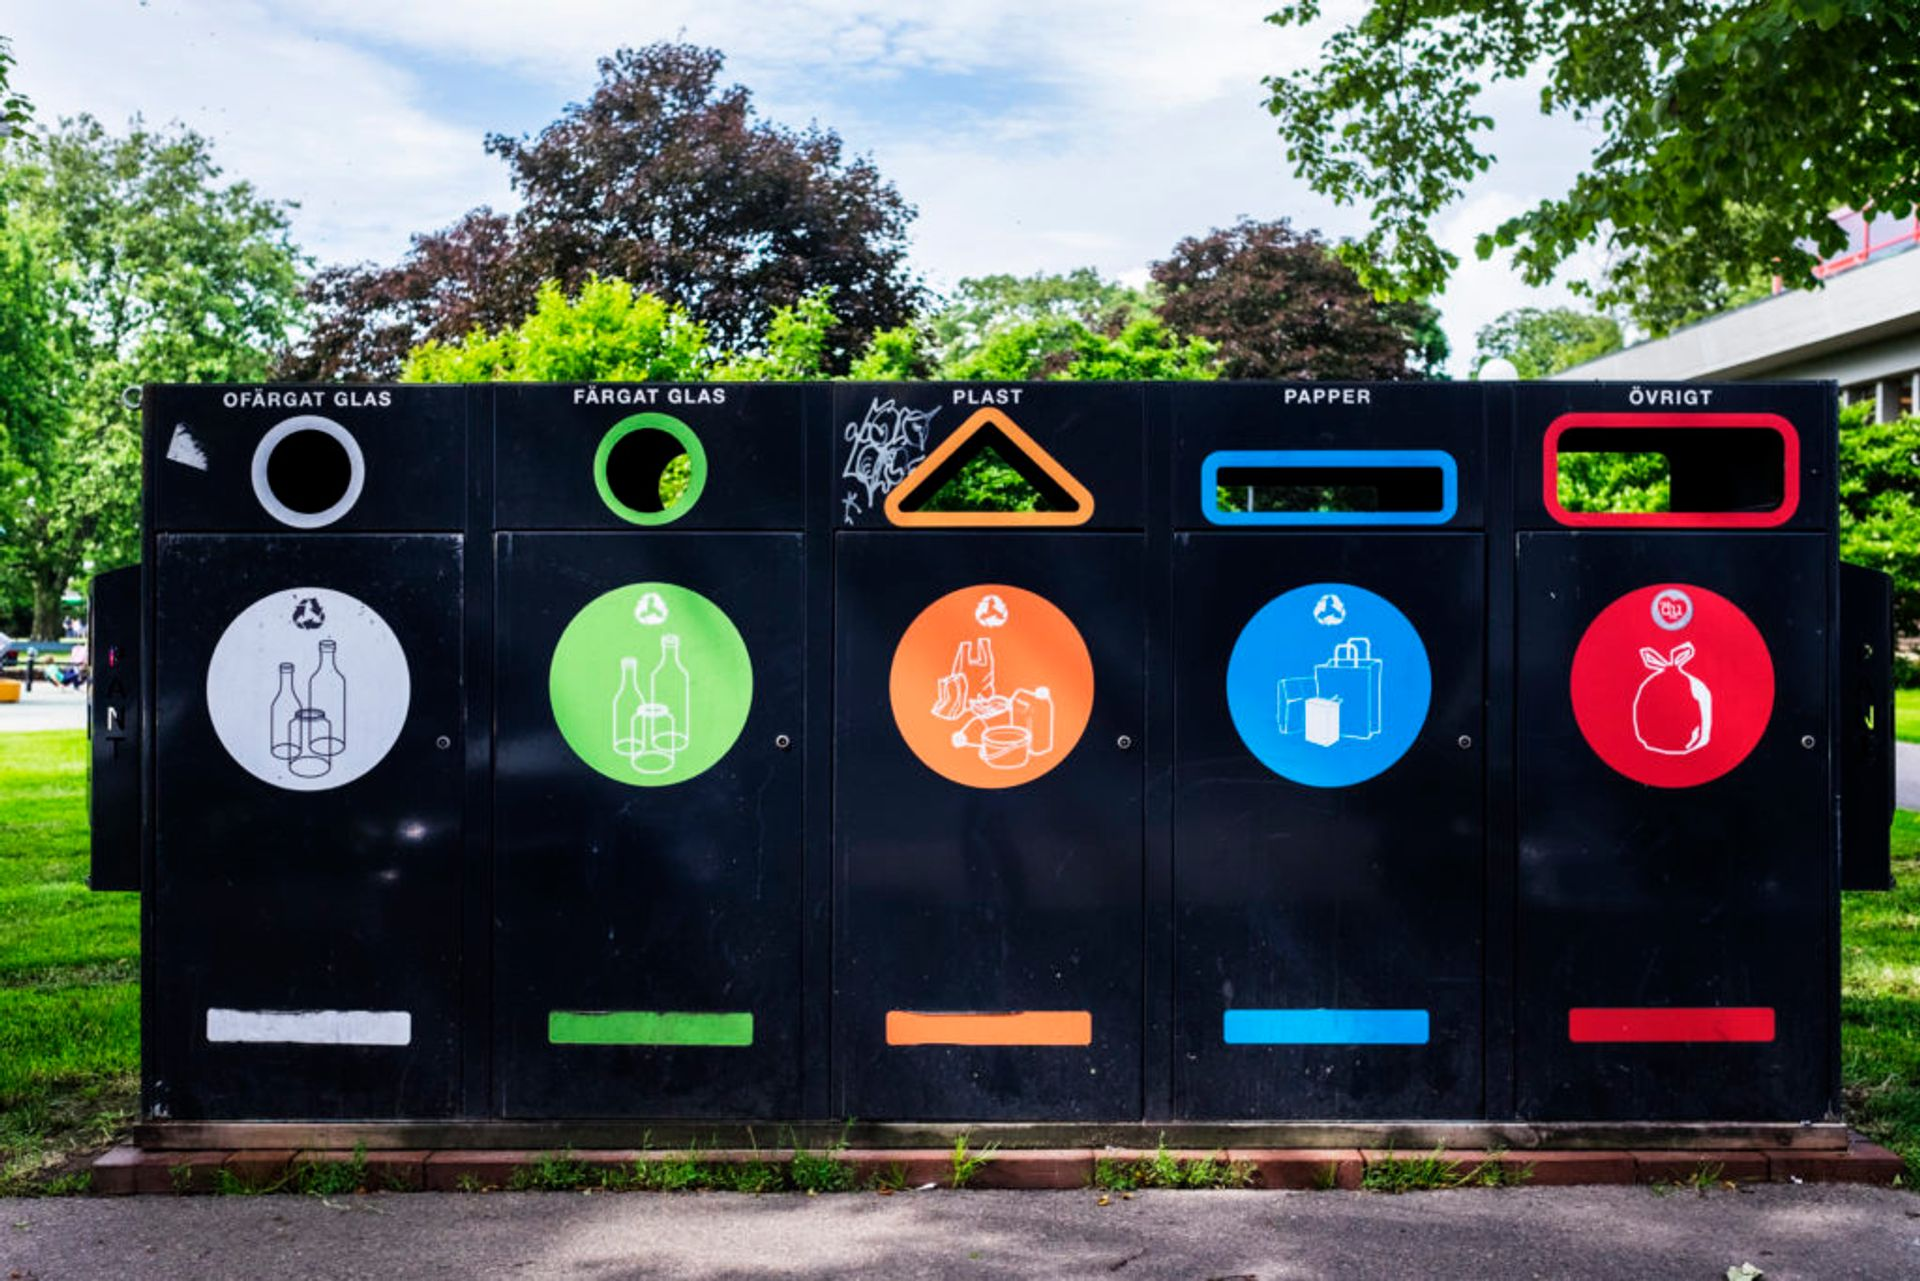 Recycling station for plastics, paper, coloured glass and clear glass outside a residential building.